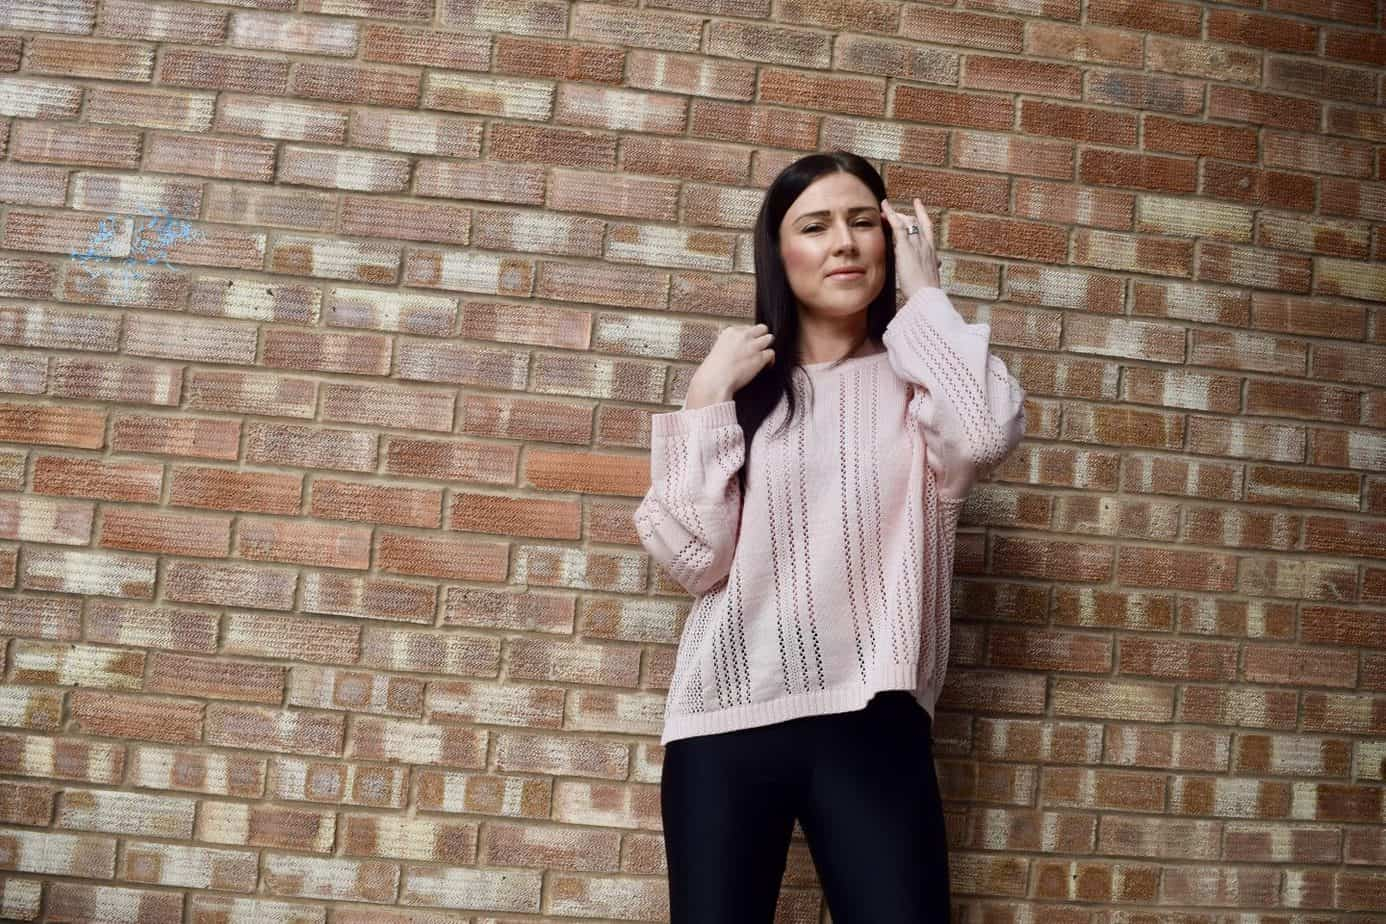 Me wearing my pink jumper from femme luxe against a brick wall smiling at the camera